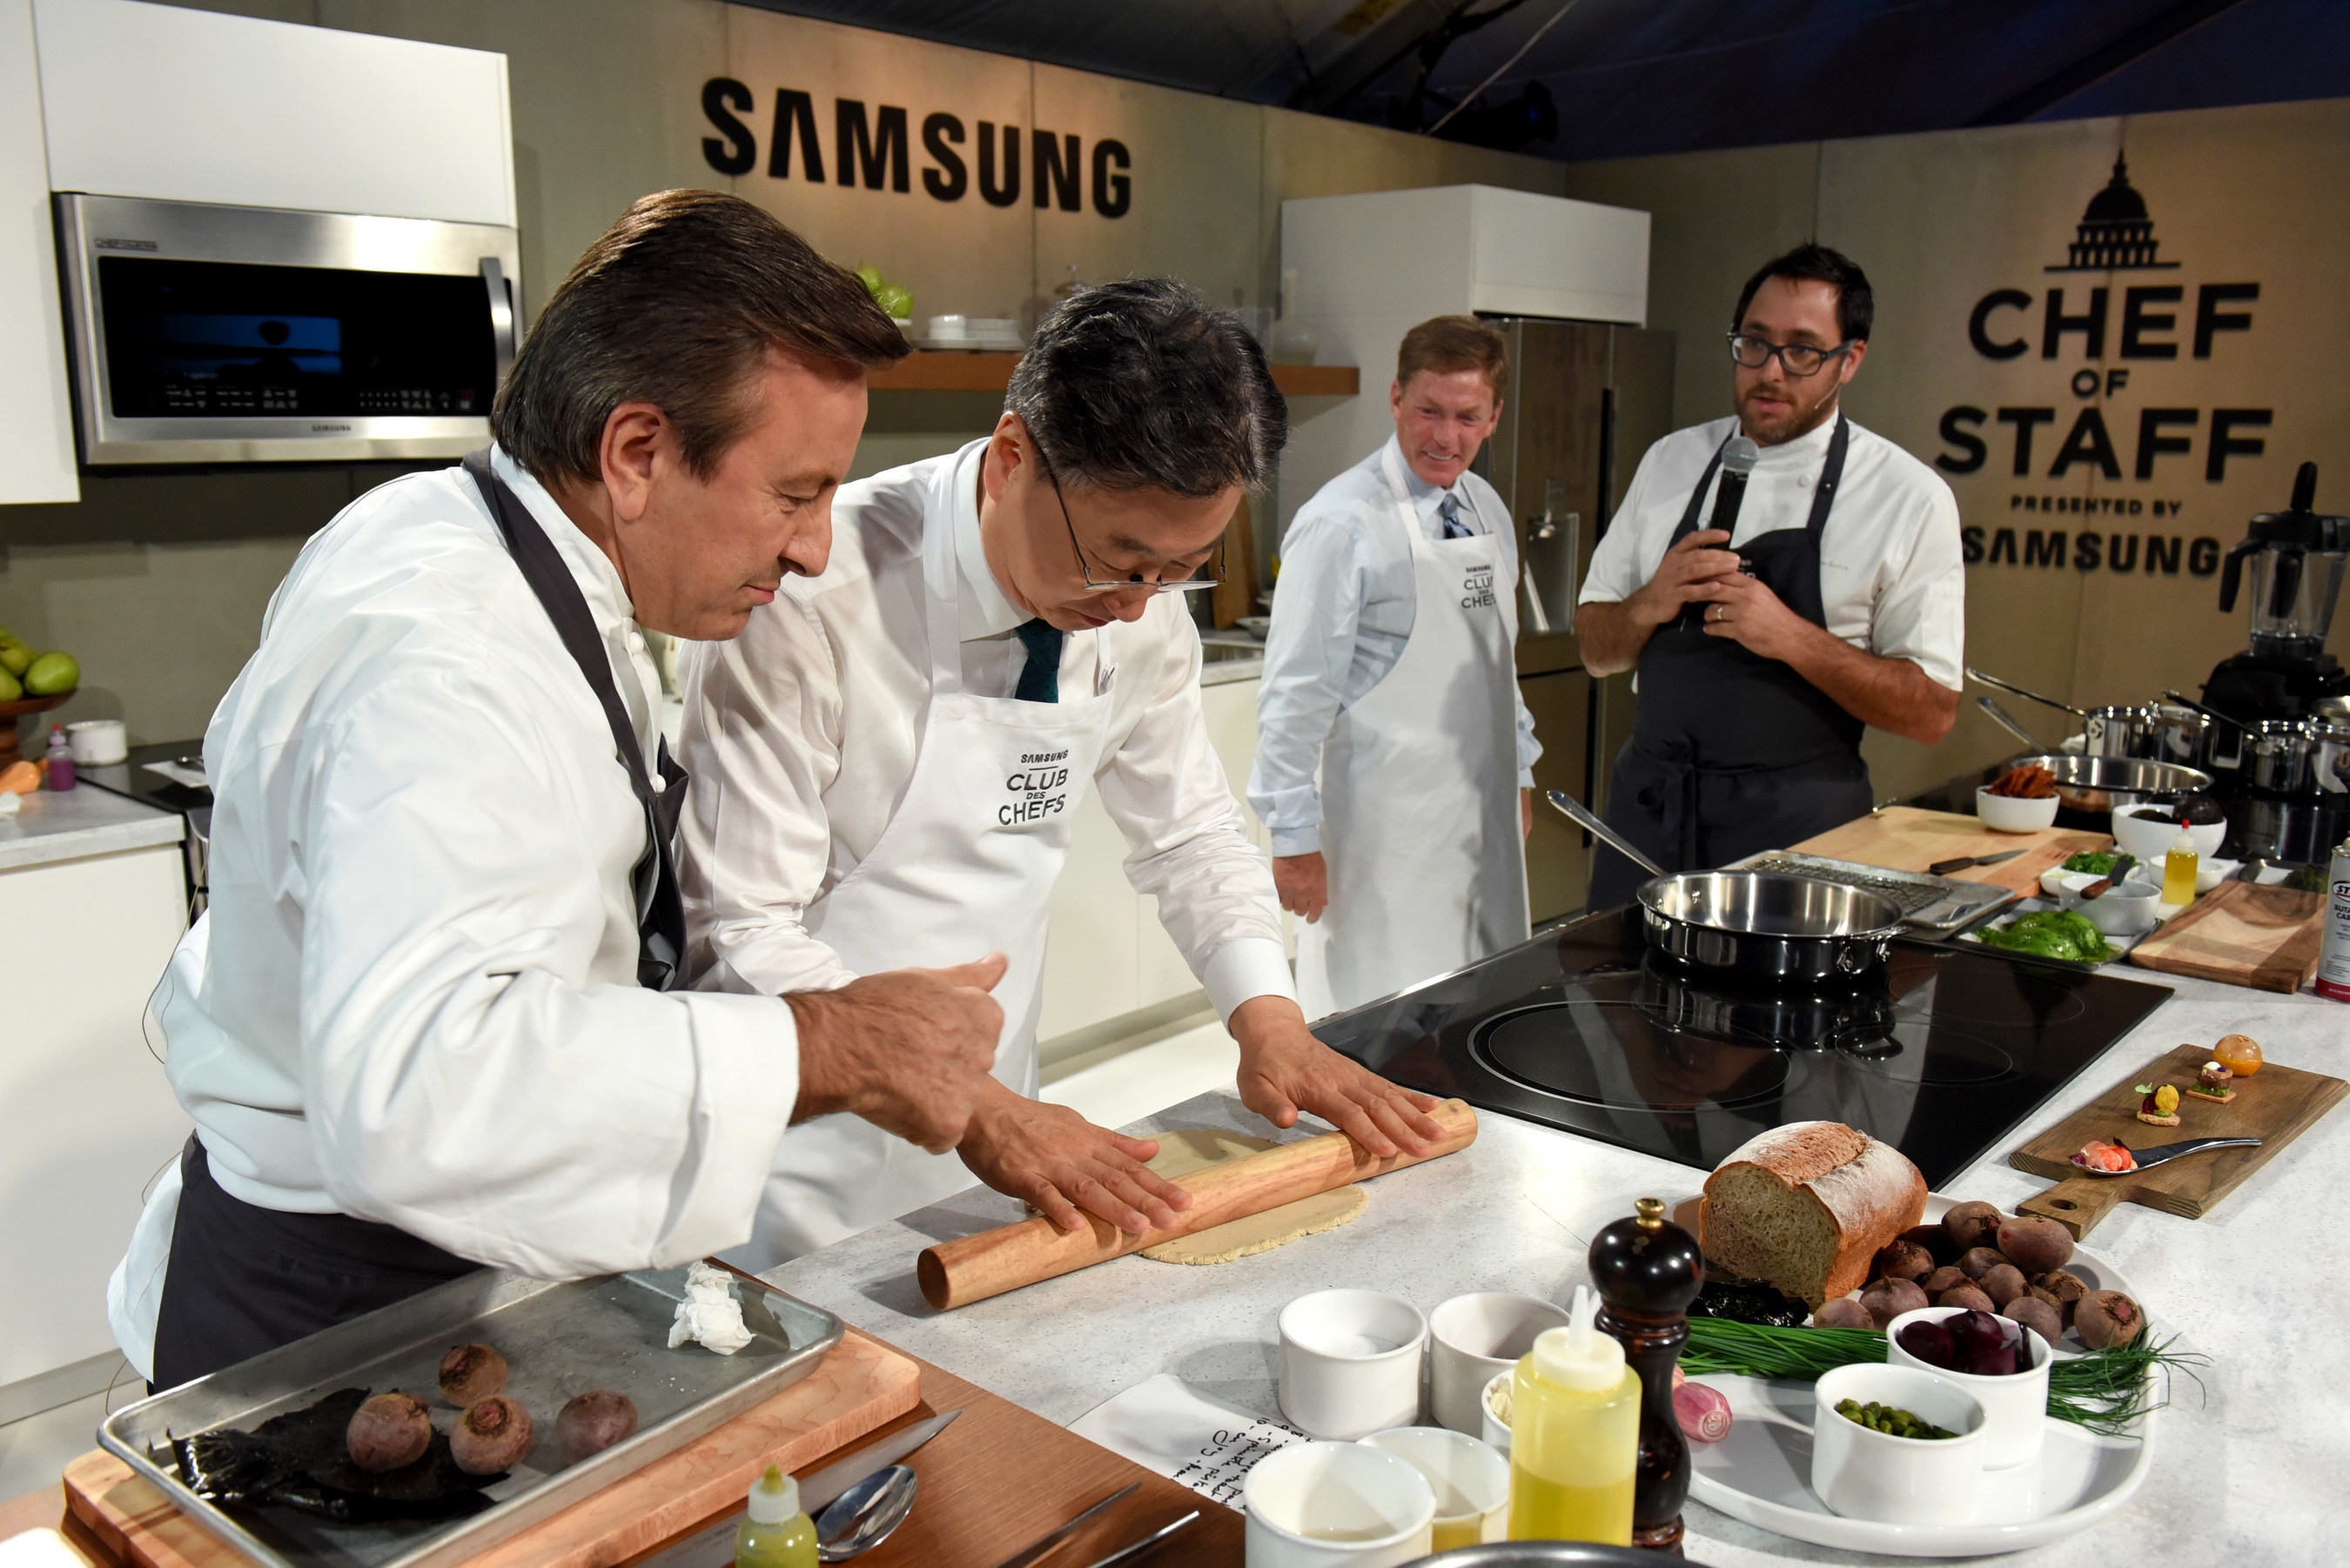 Pictured from left to right: Daniel Boulud, Chef DANIEL, BK Yoon, President and CEO, Consumer Electronics, Samsung Electronics, Ken Fisher, Chairman and CEO Fisher House Foundation, Chef Christopher Kostow, Chef The Restaurant at Meadowood